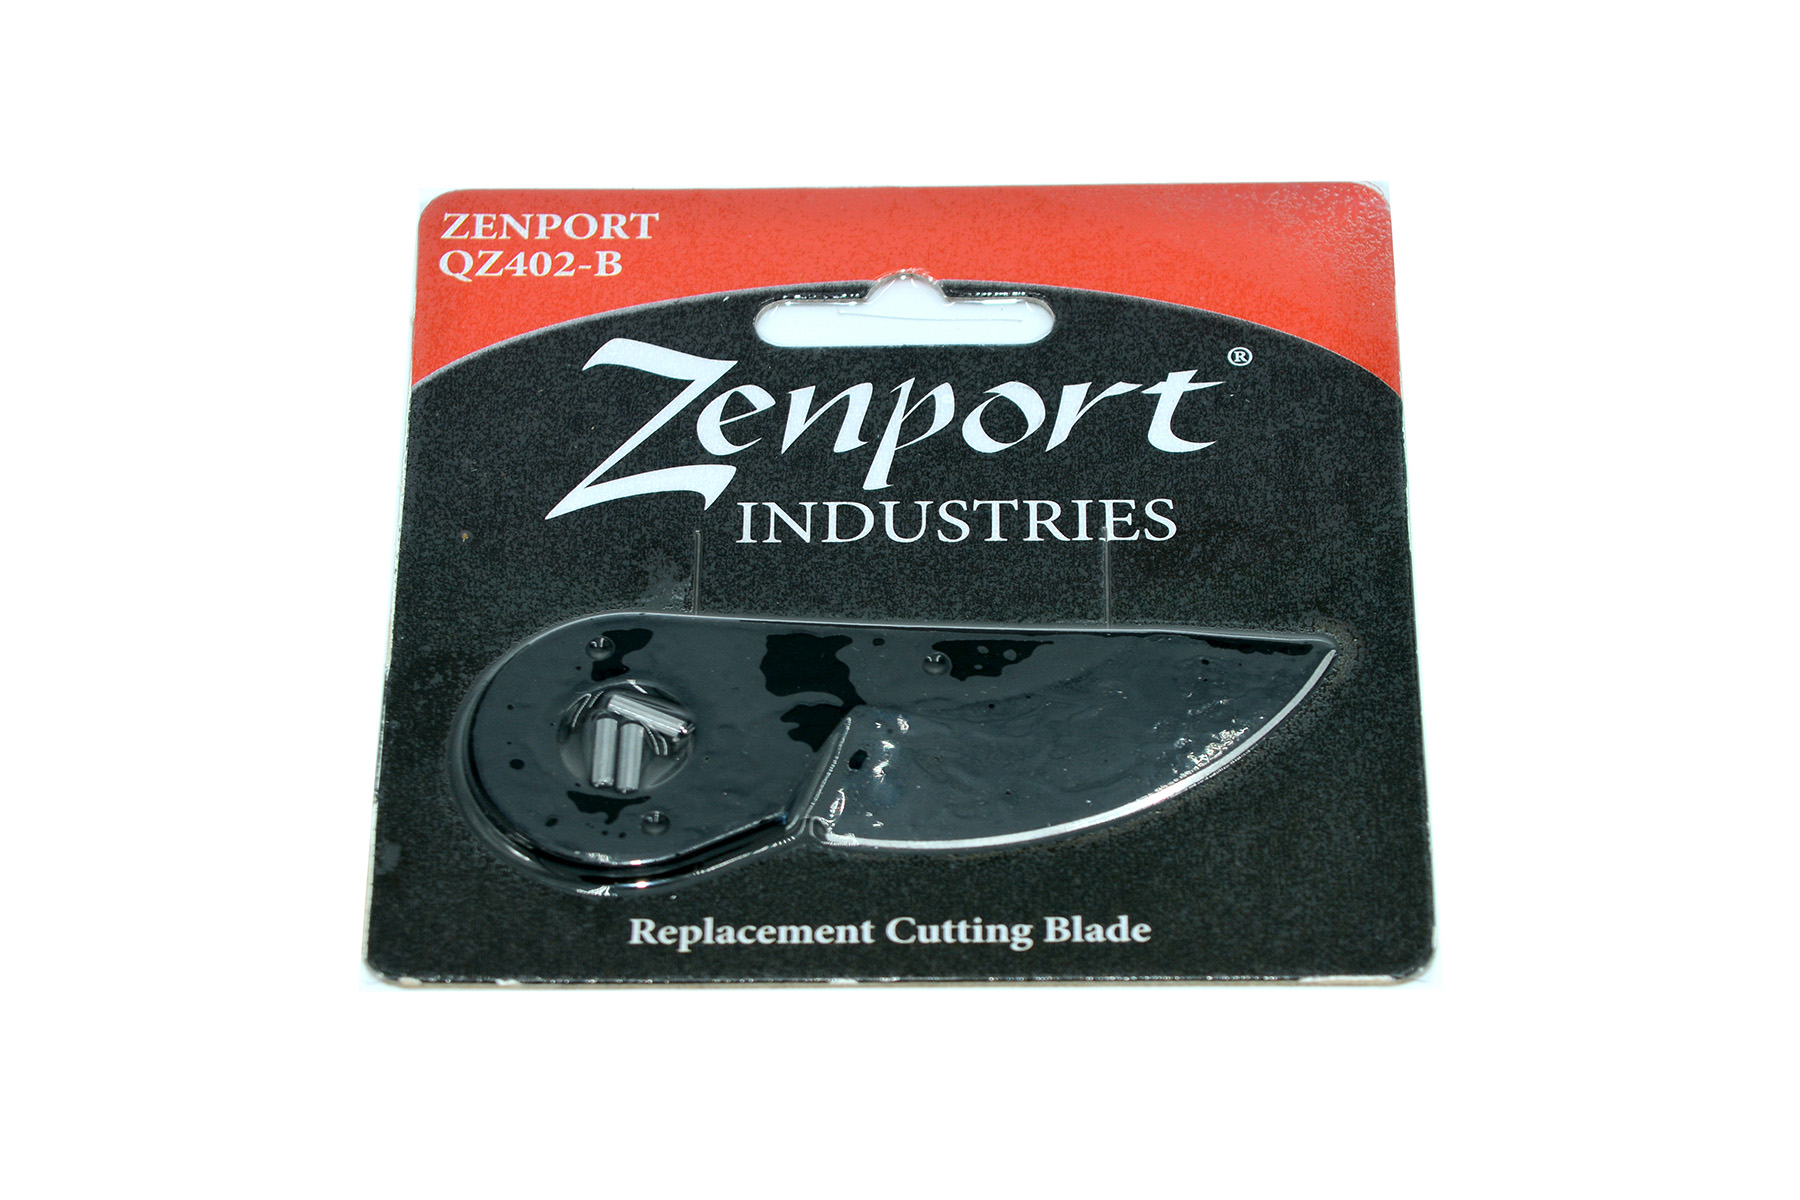 Zenport Pruner Blade QZ402-B Replacement Cutting Blade for QZ402 QZ411